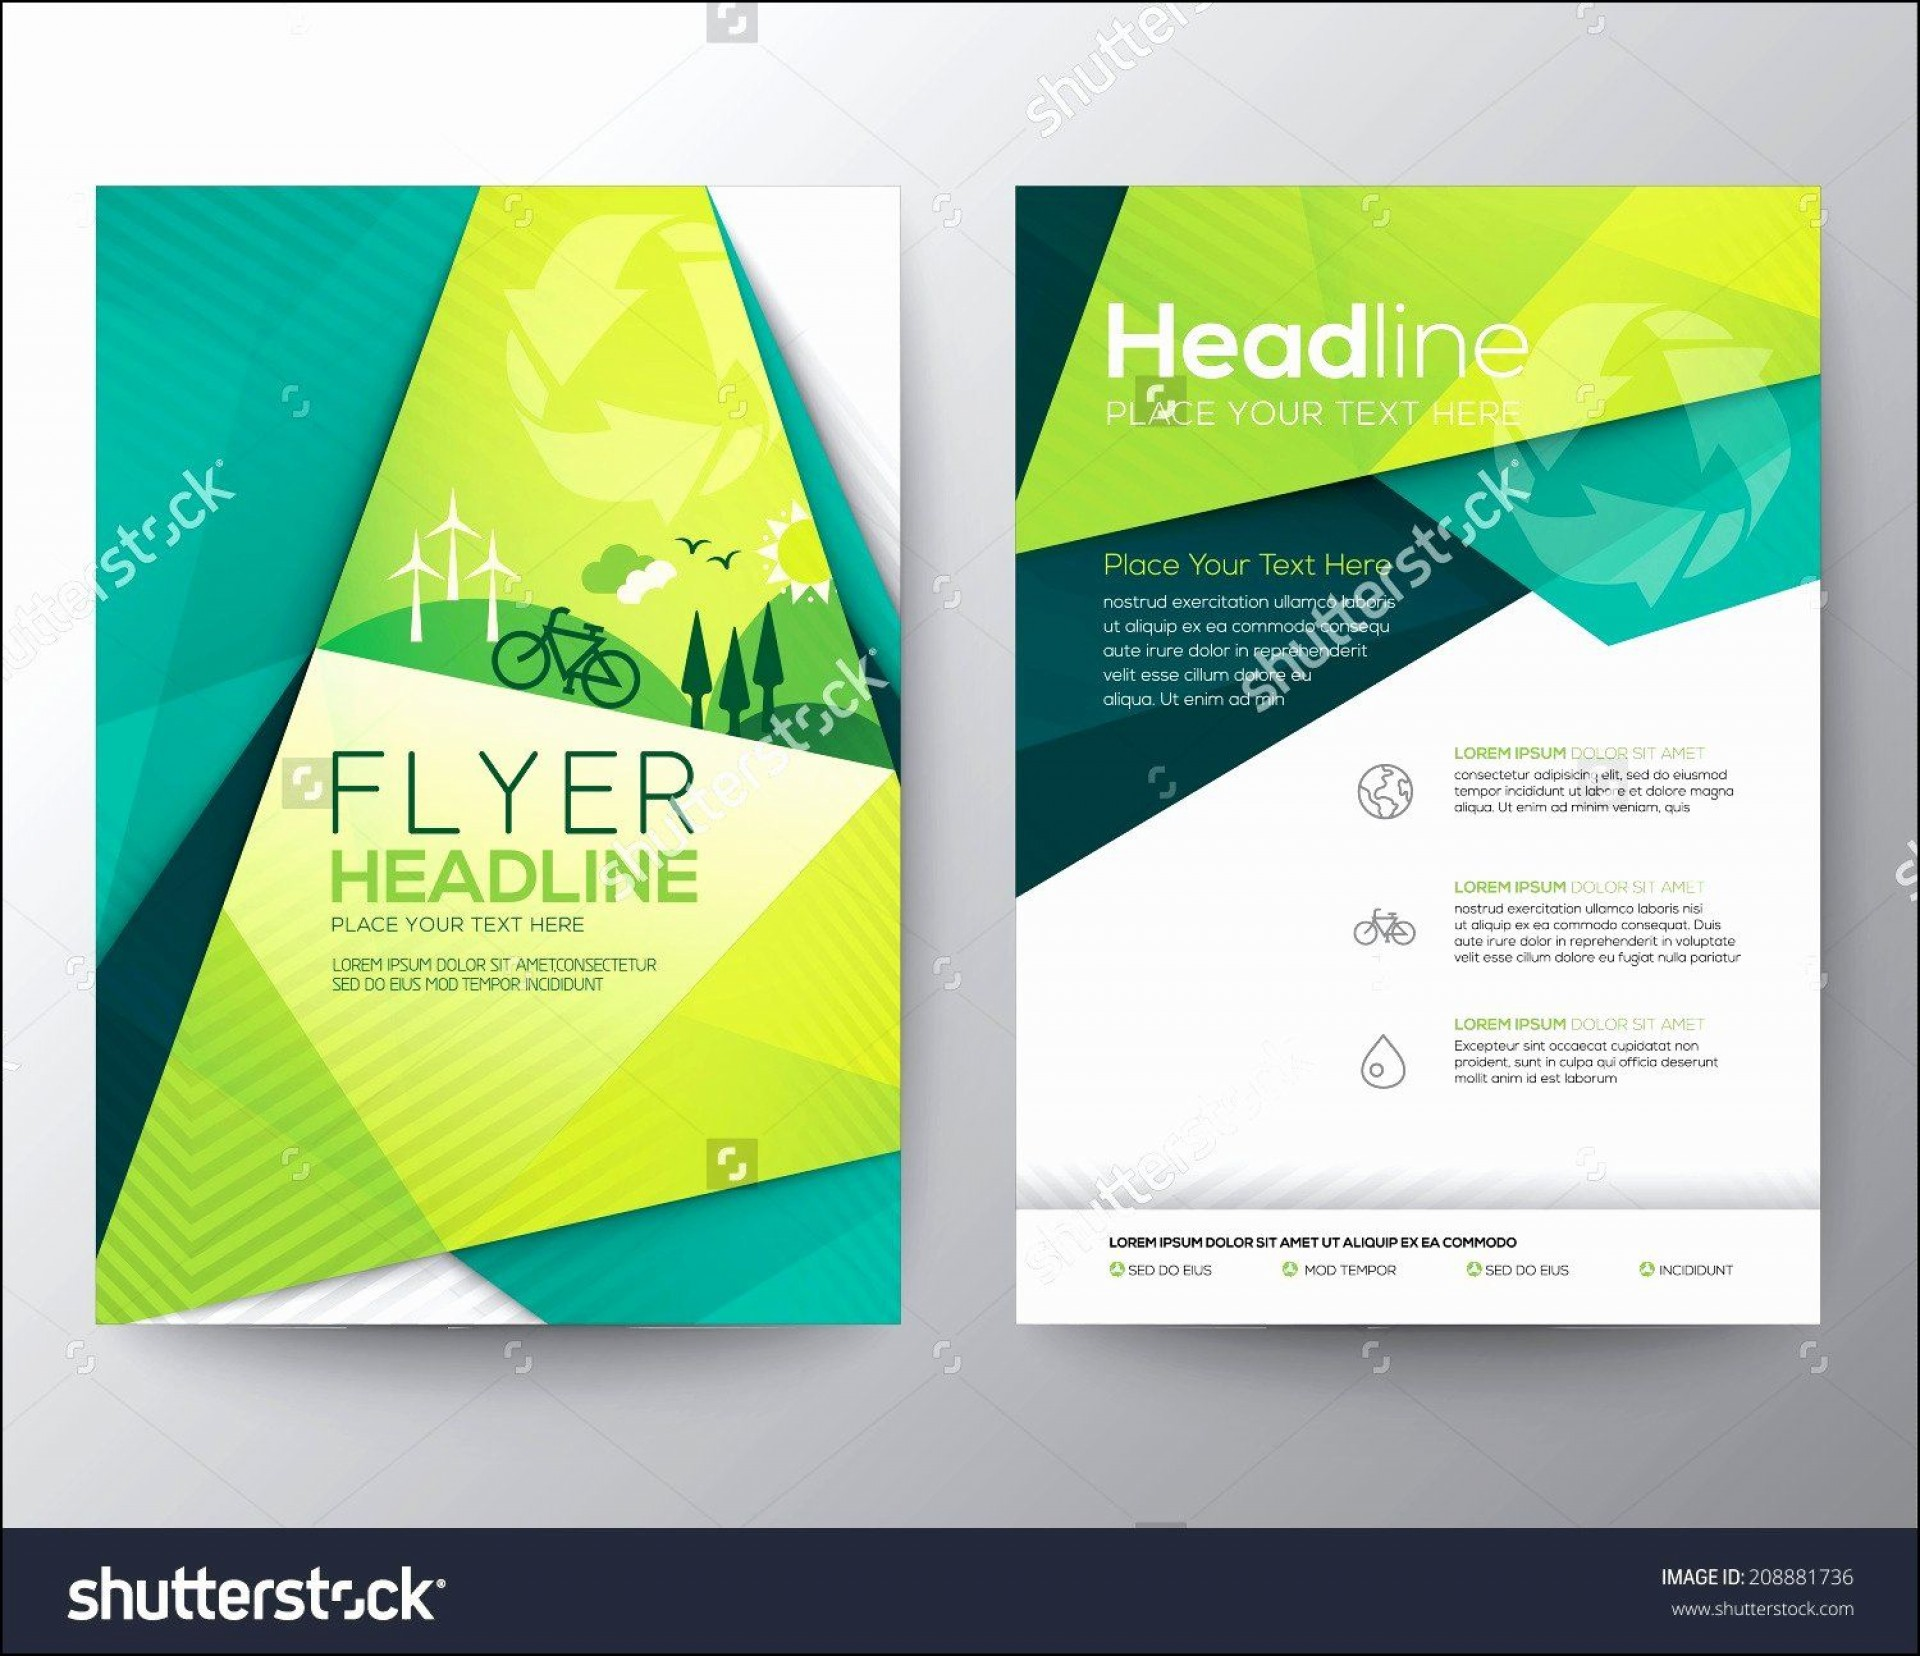 001 Fearsome Free Download Flyer Template Picture  Templates Blank Leaflet Word Psd1920